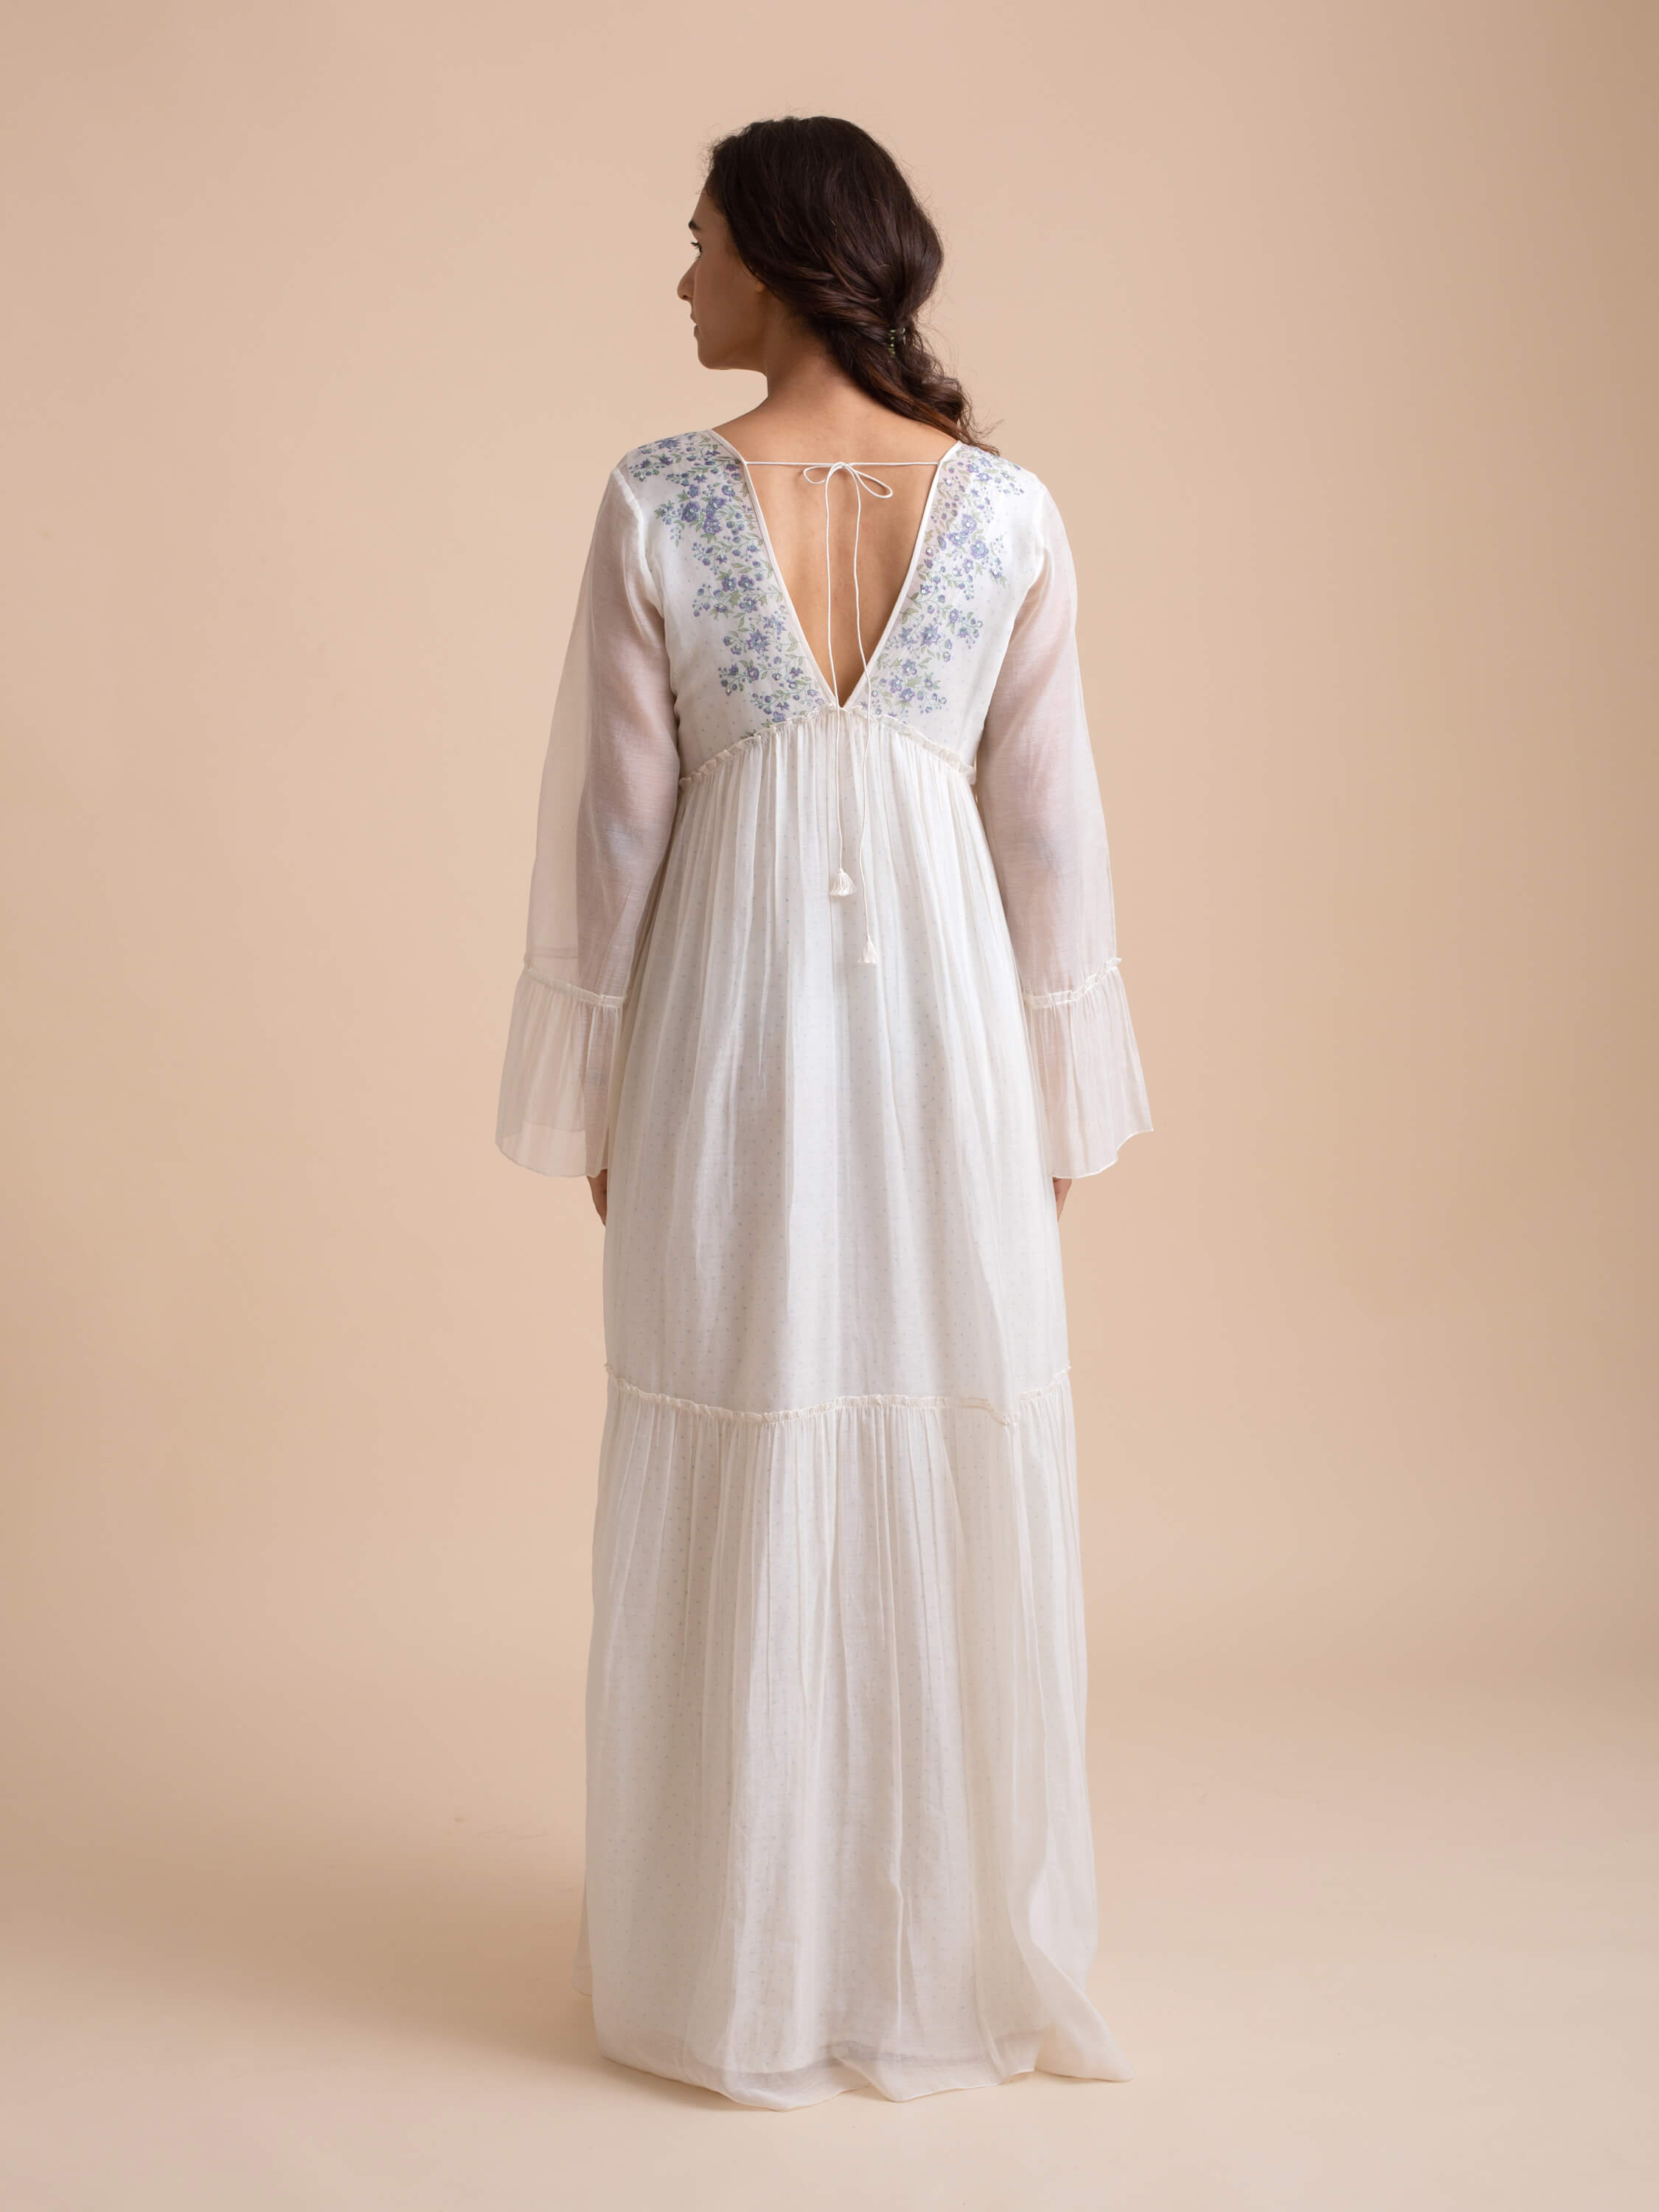 Harvest Moon Maxi Dress - BunaStudio